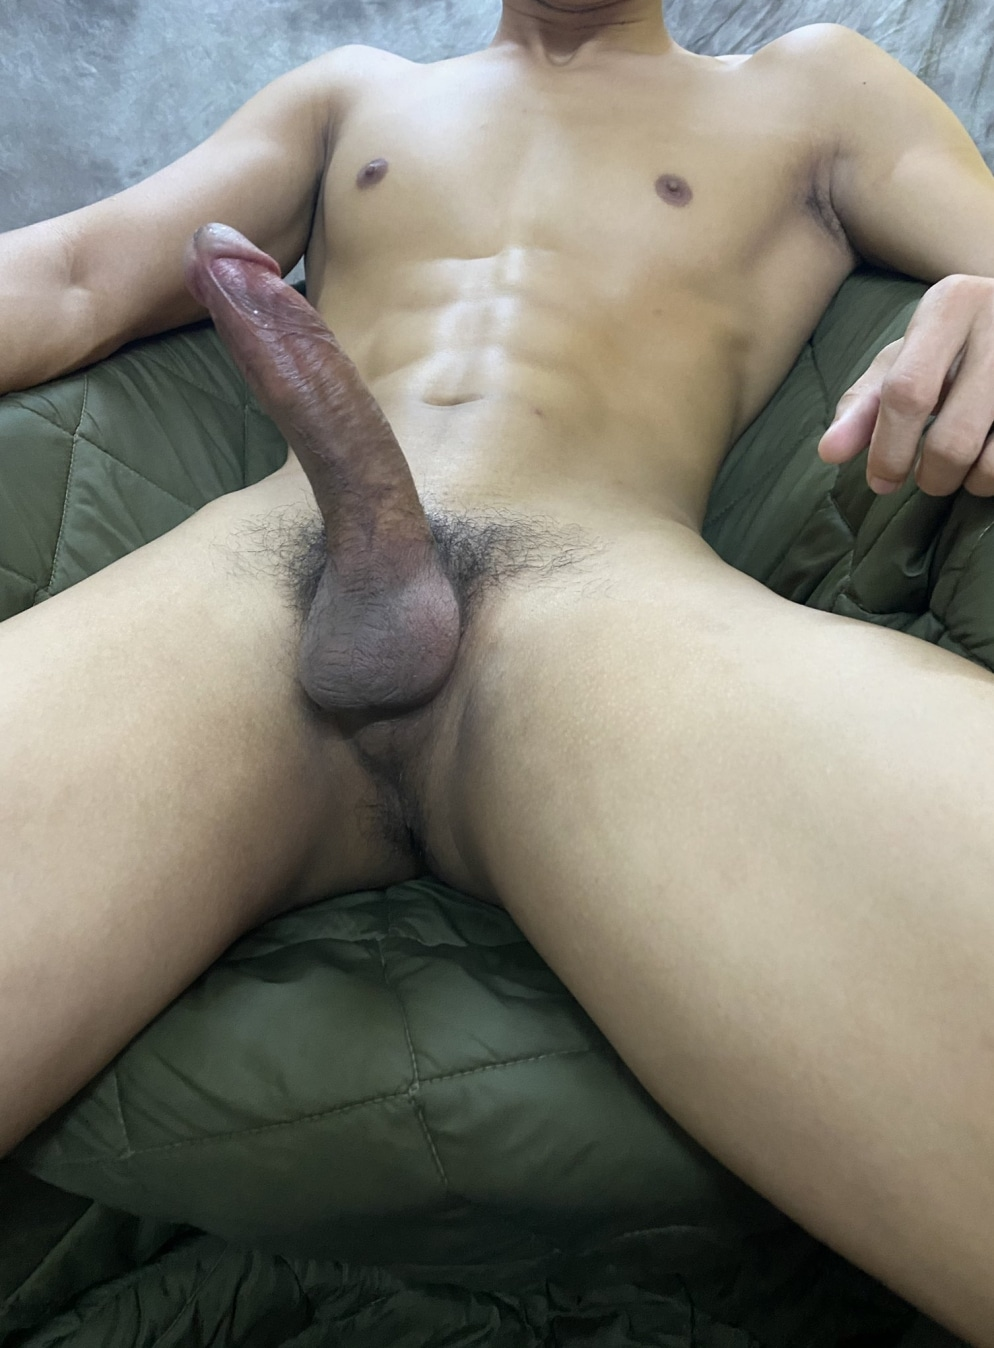 Big thick erected penis